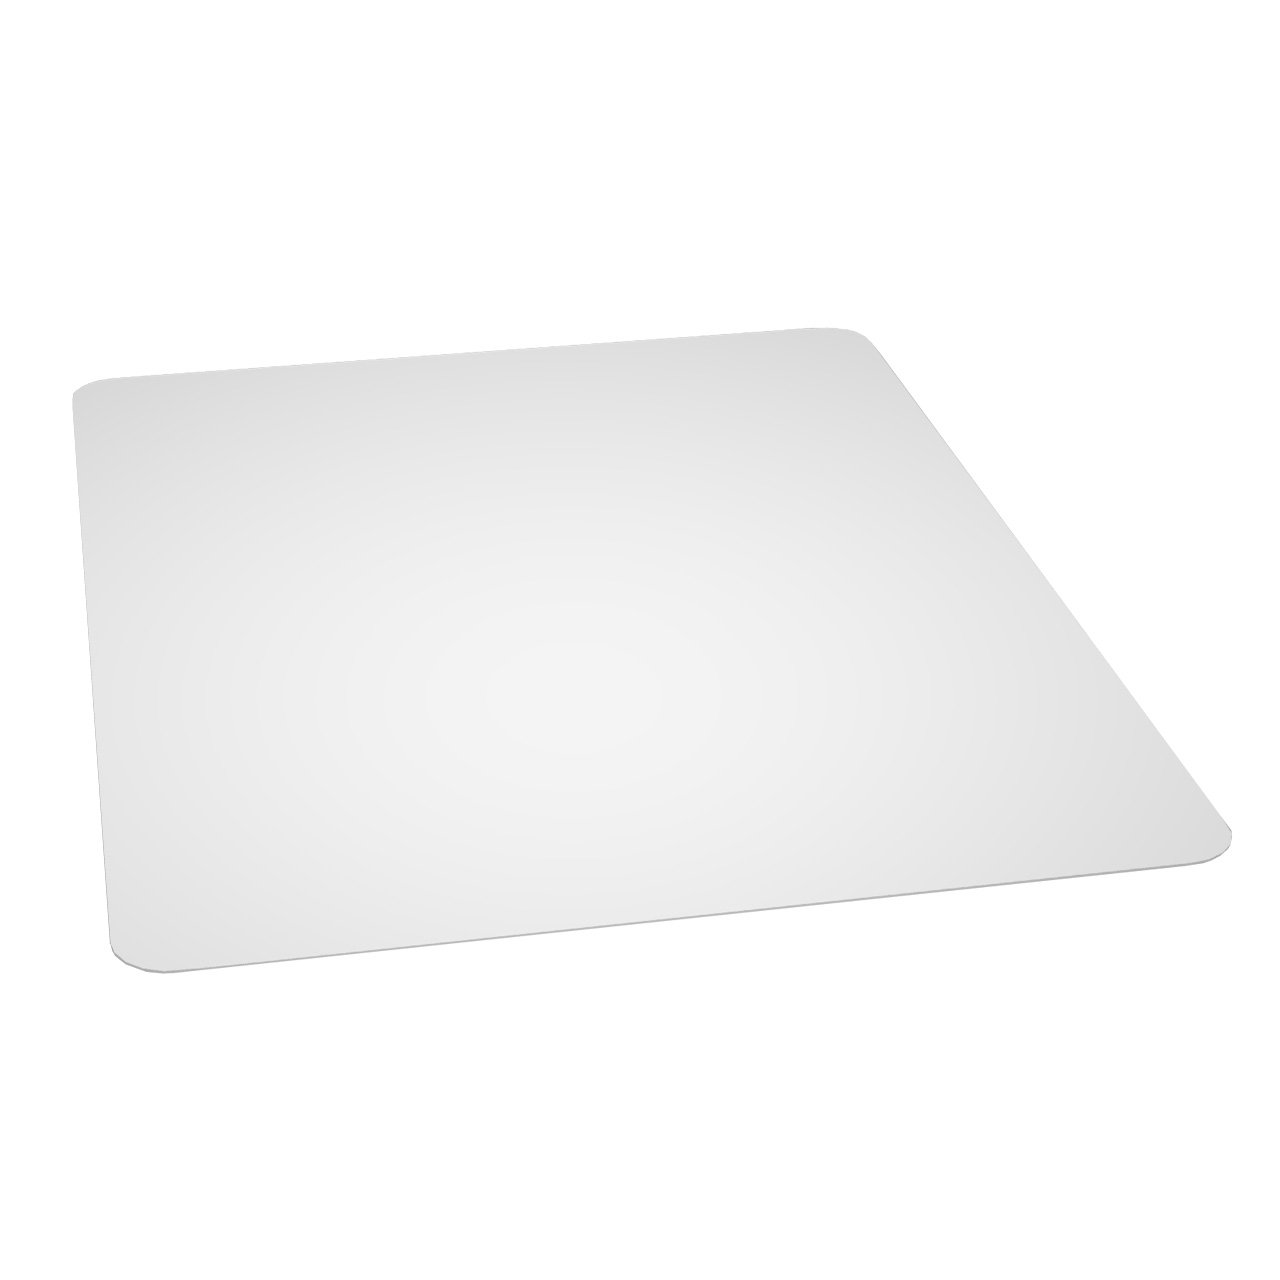 ES Robbins Rectangle Desk Pad, 20-Inch by 36-Inch, Clear